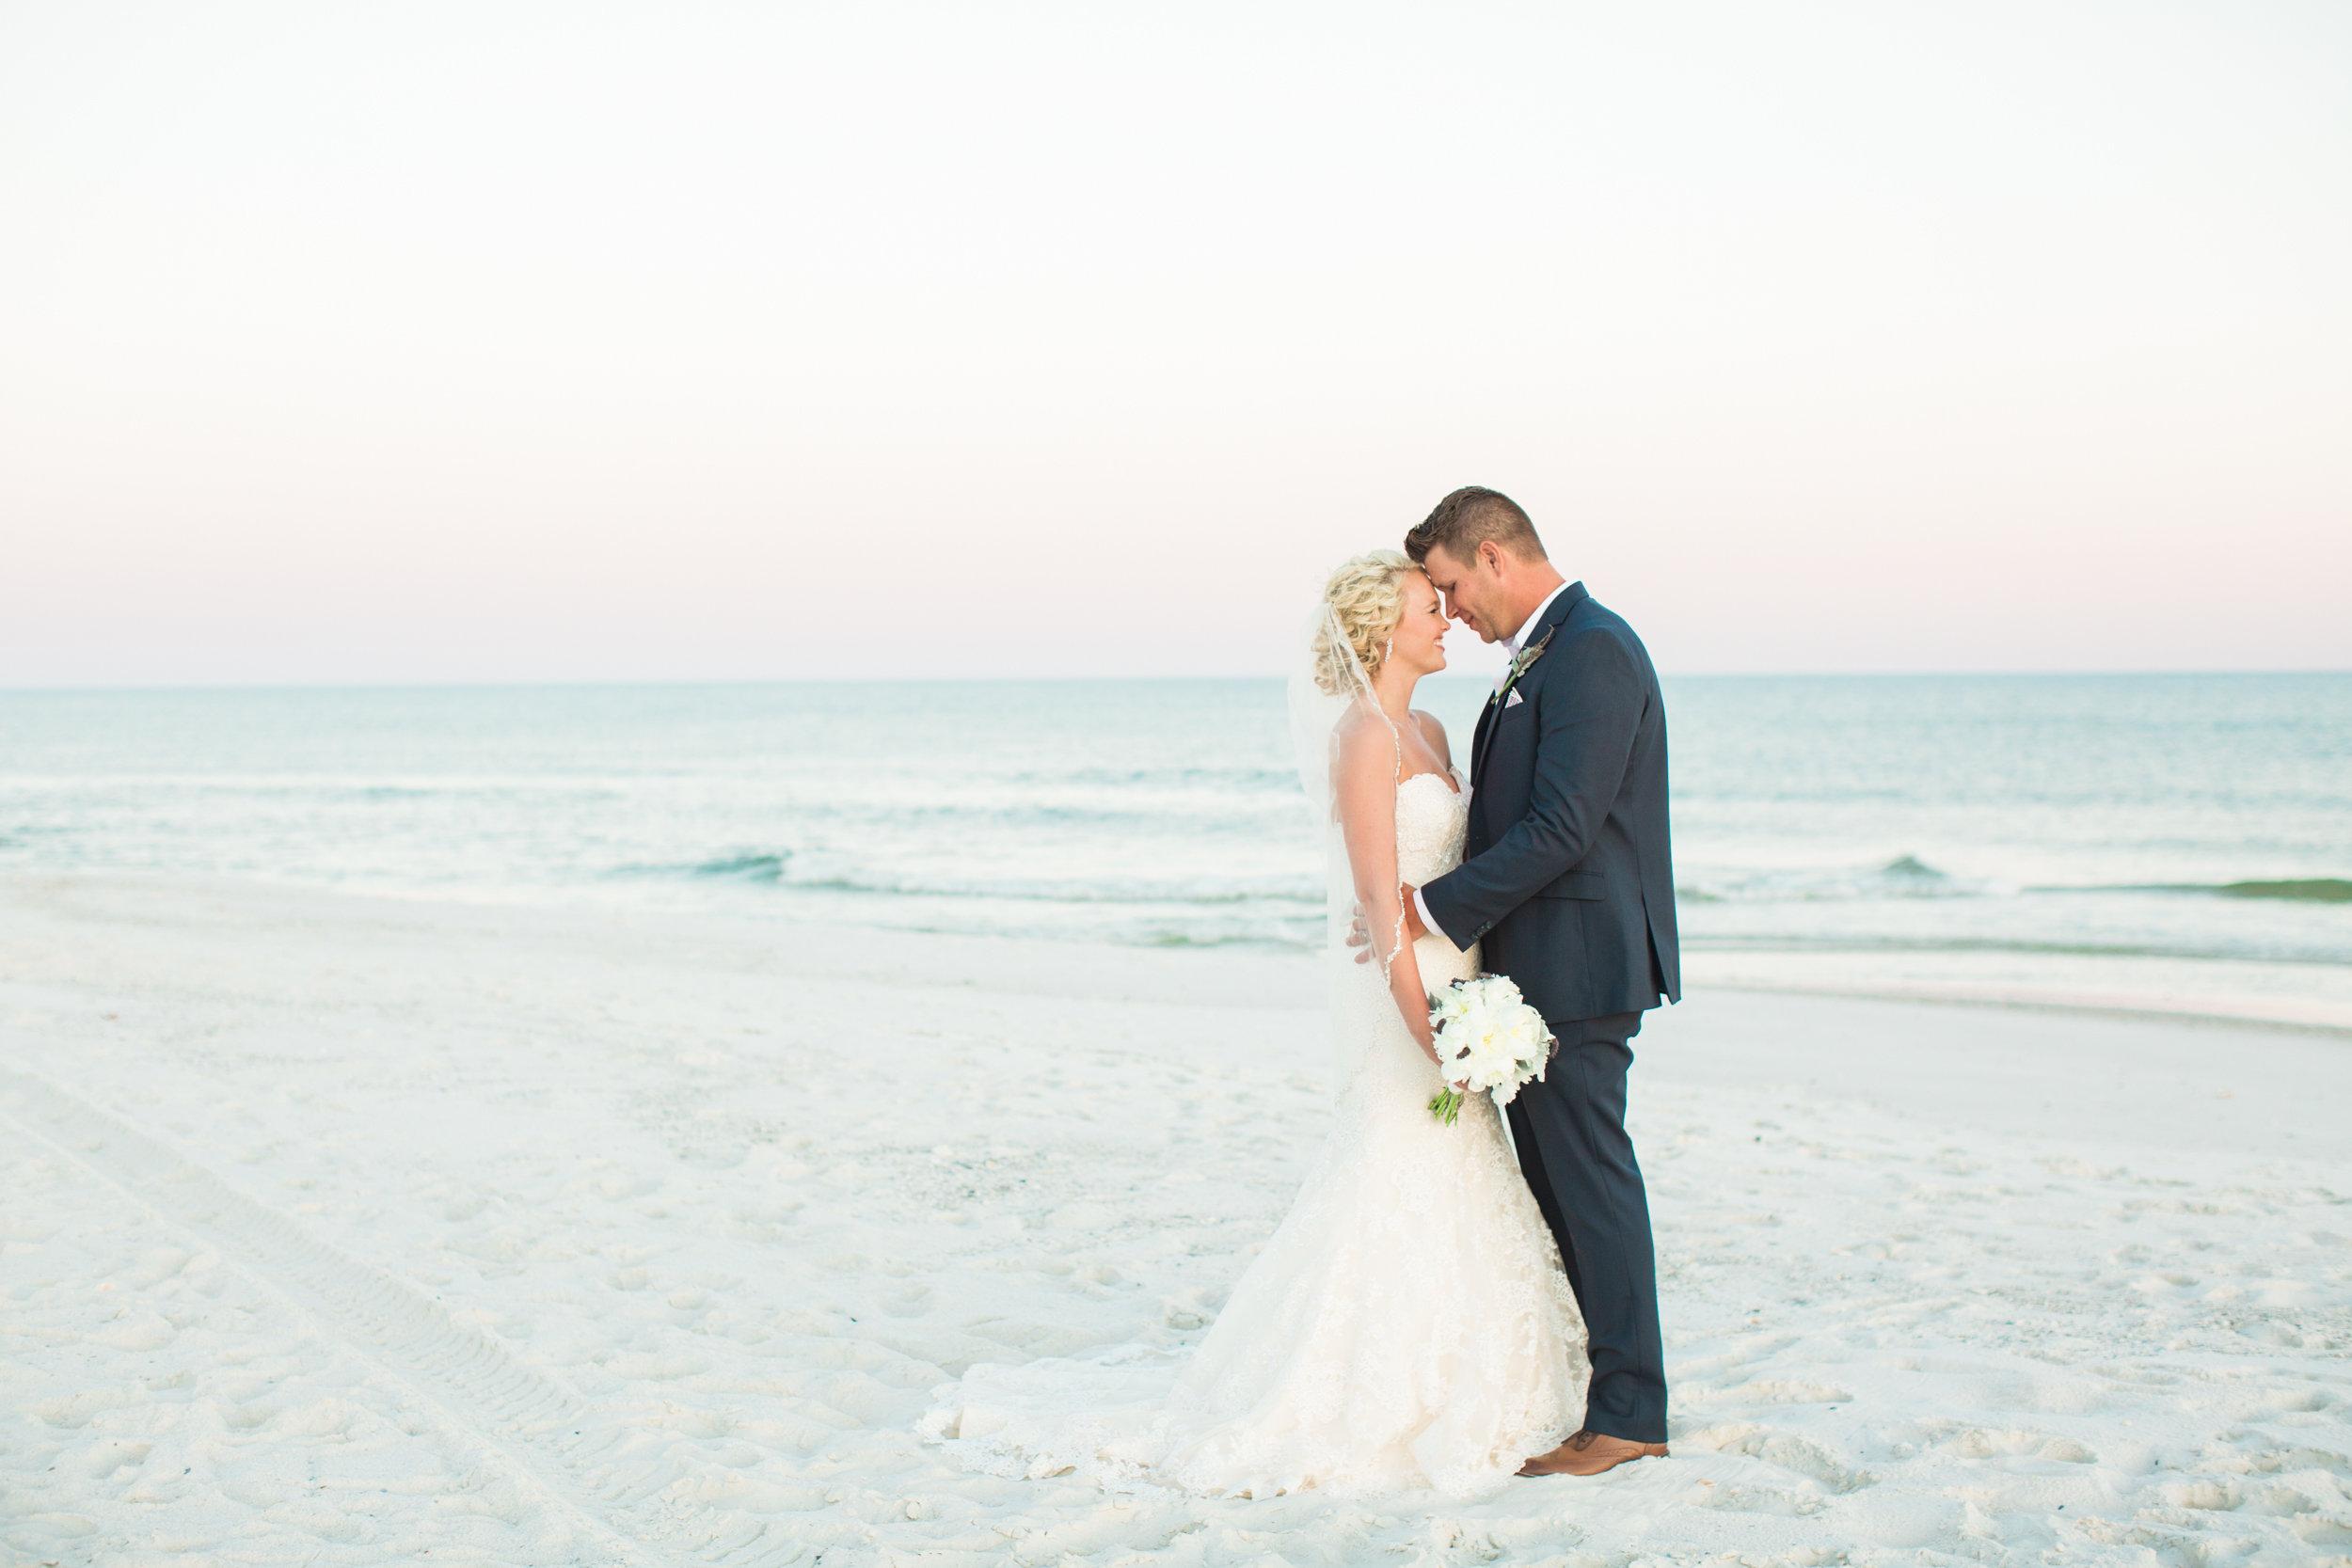 Southern Salt Weddings Kacie Dustin-Kacie Dustin by Freshly Bold-0063